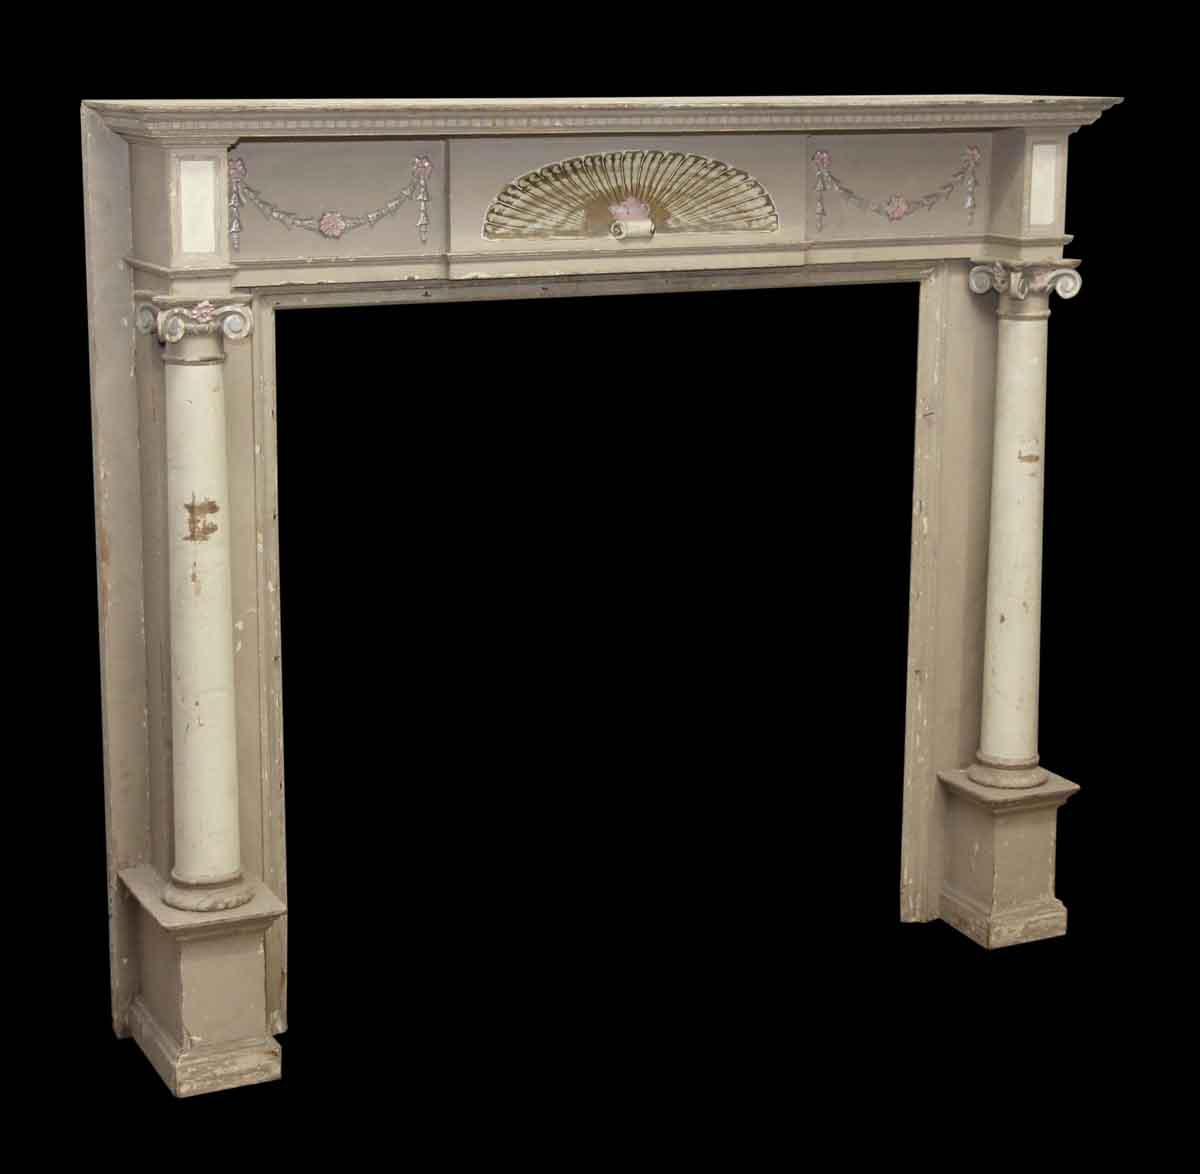 Decorative wooden mantel with fan detail ionic columns for Architectural wood columns